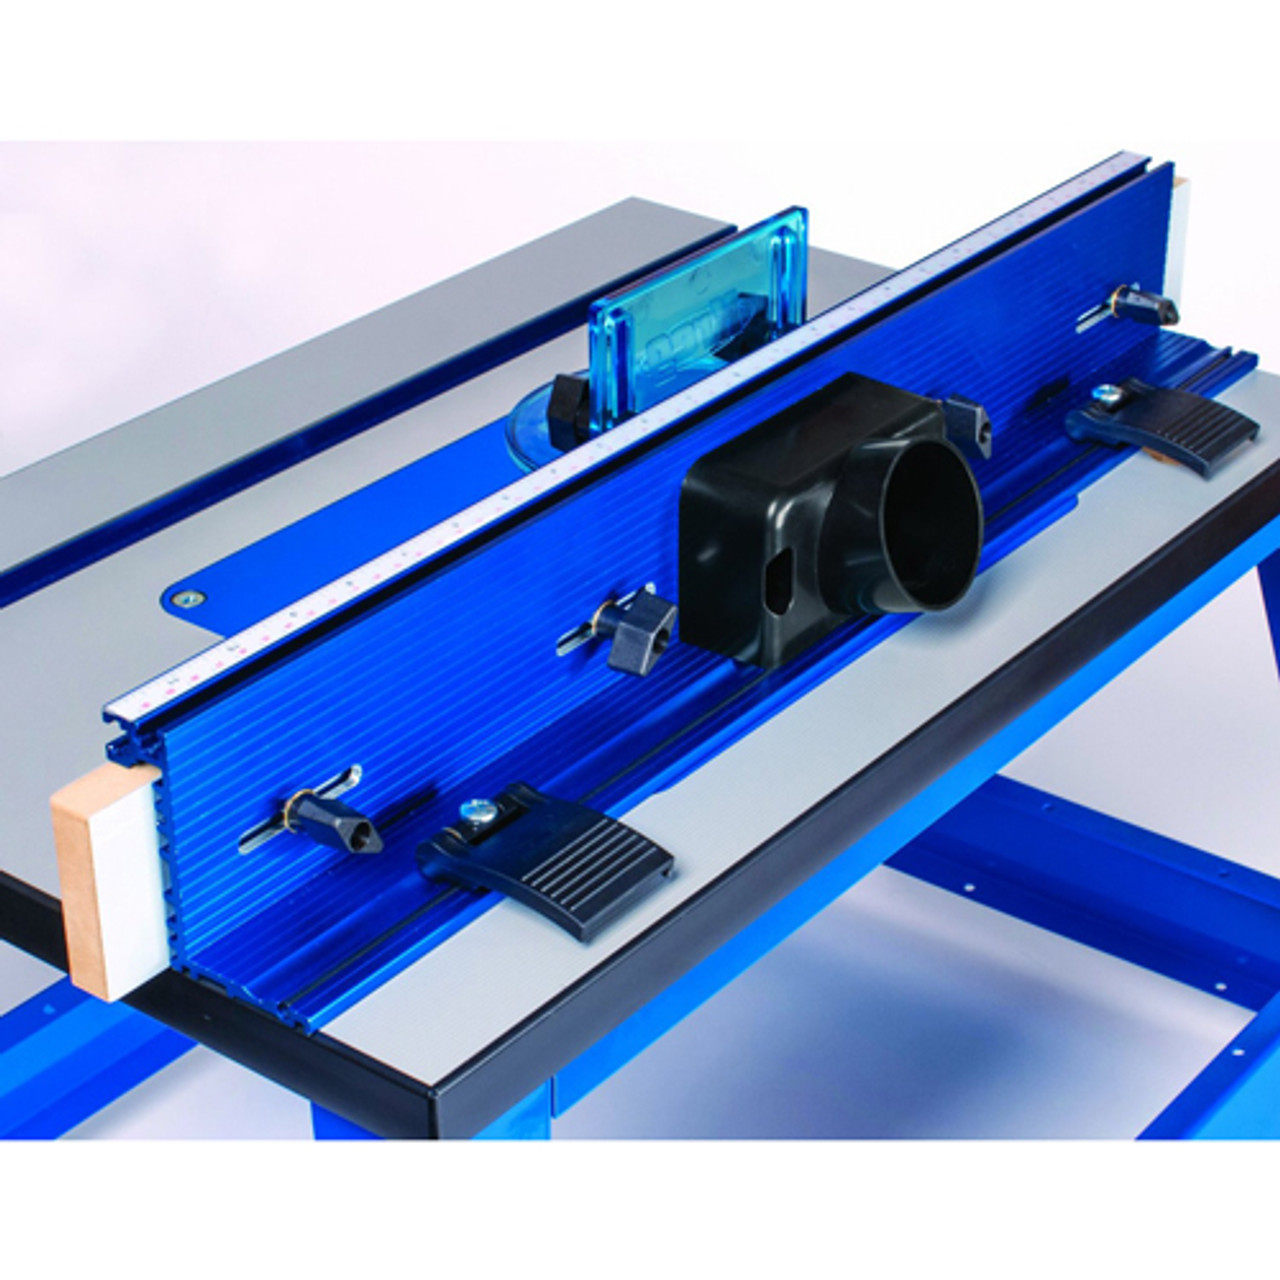 Buy Router Table Precision Benchtop Kreg at Busy Bee Tools